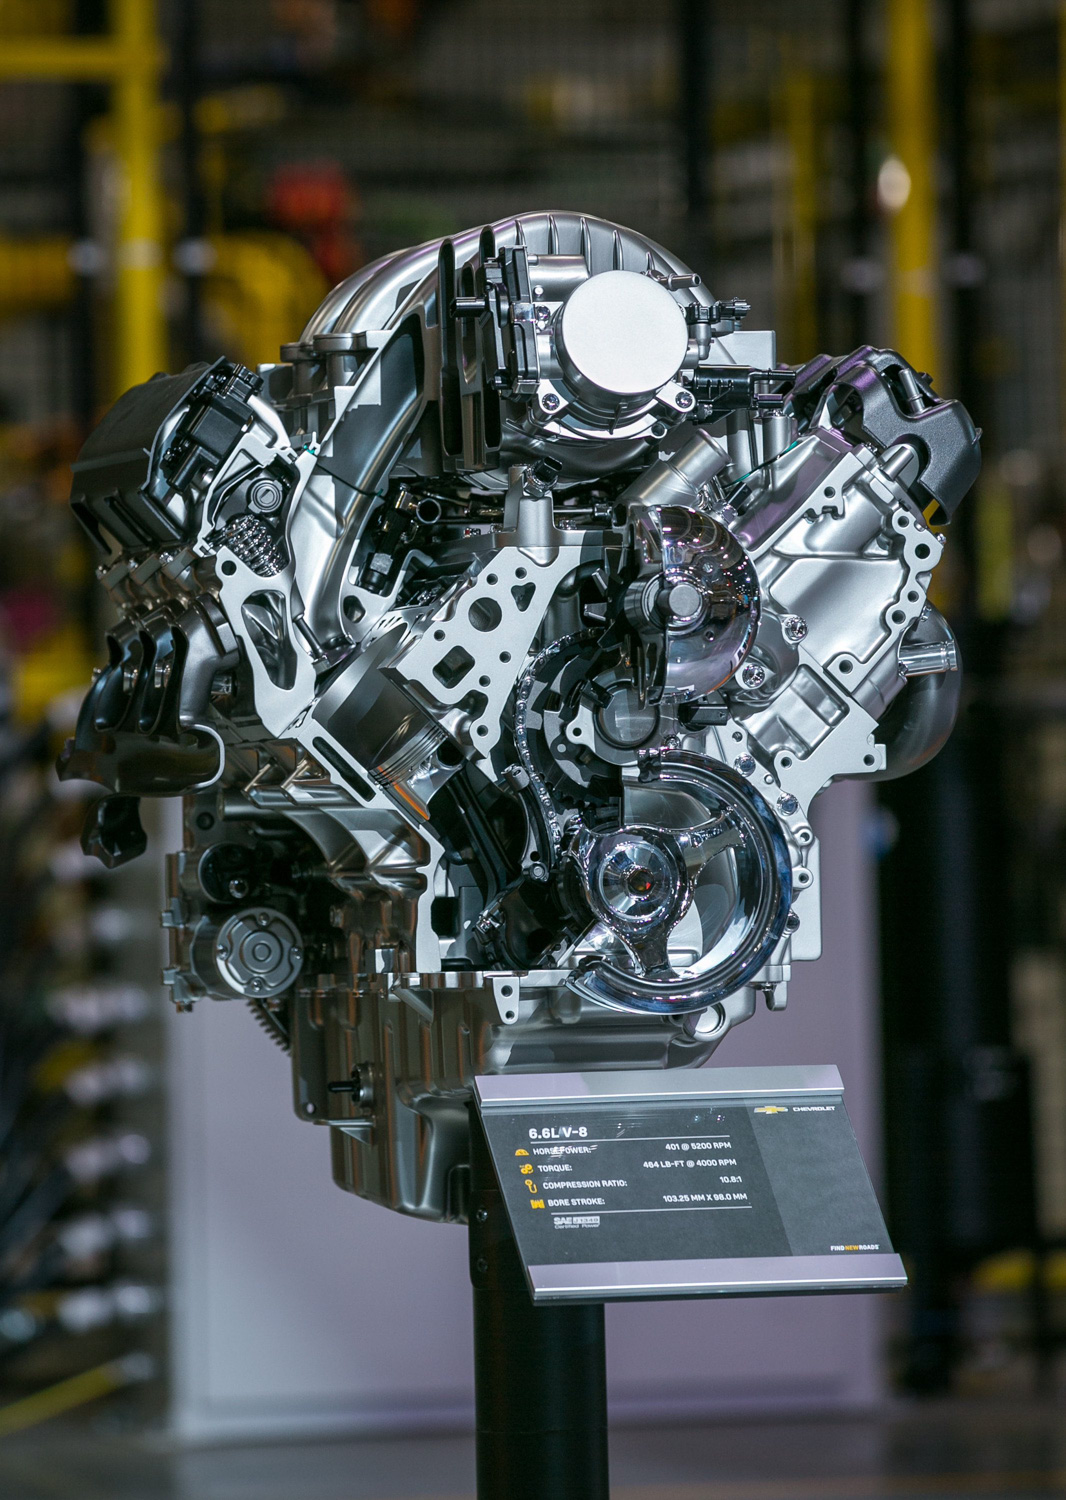 GM's all-new gas-powered 6.6-liter V-8 Front view